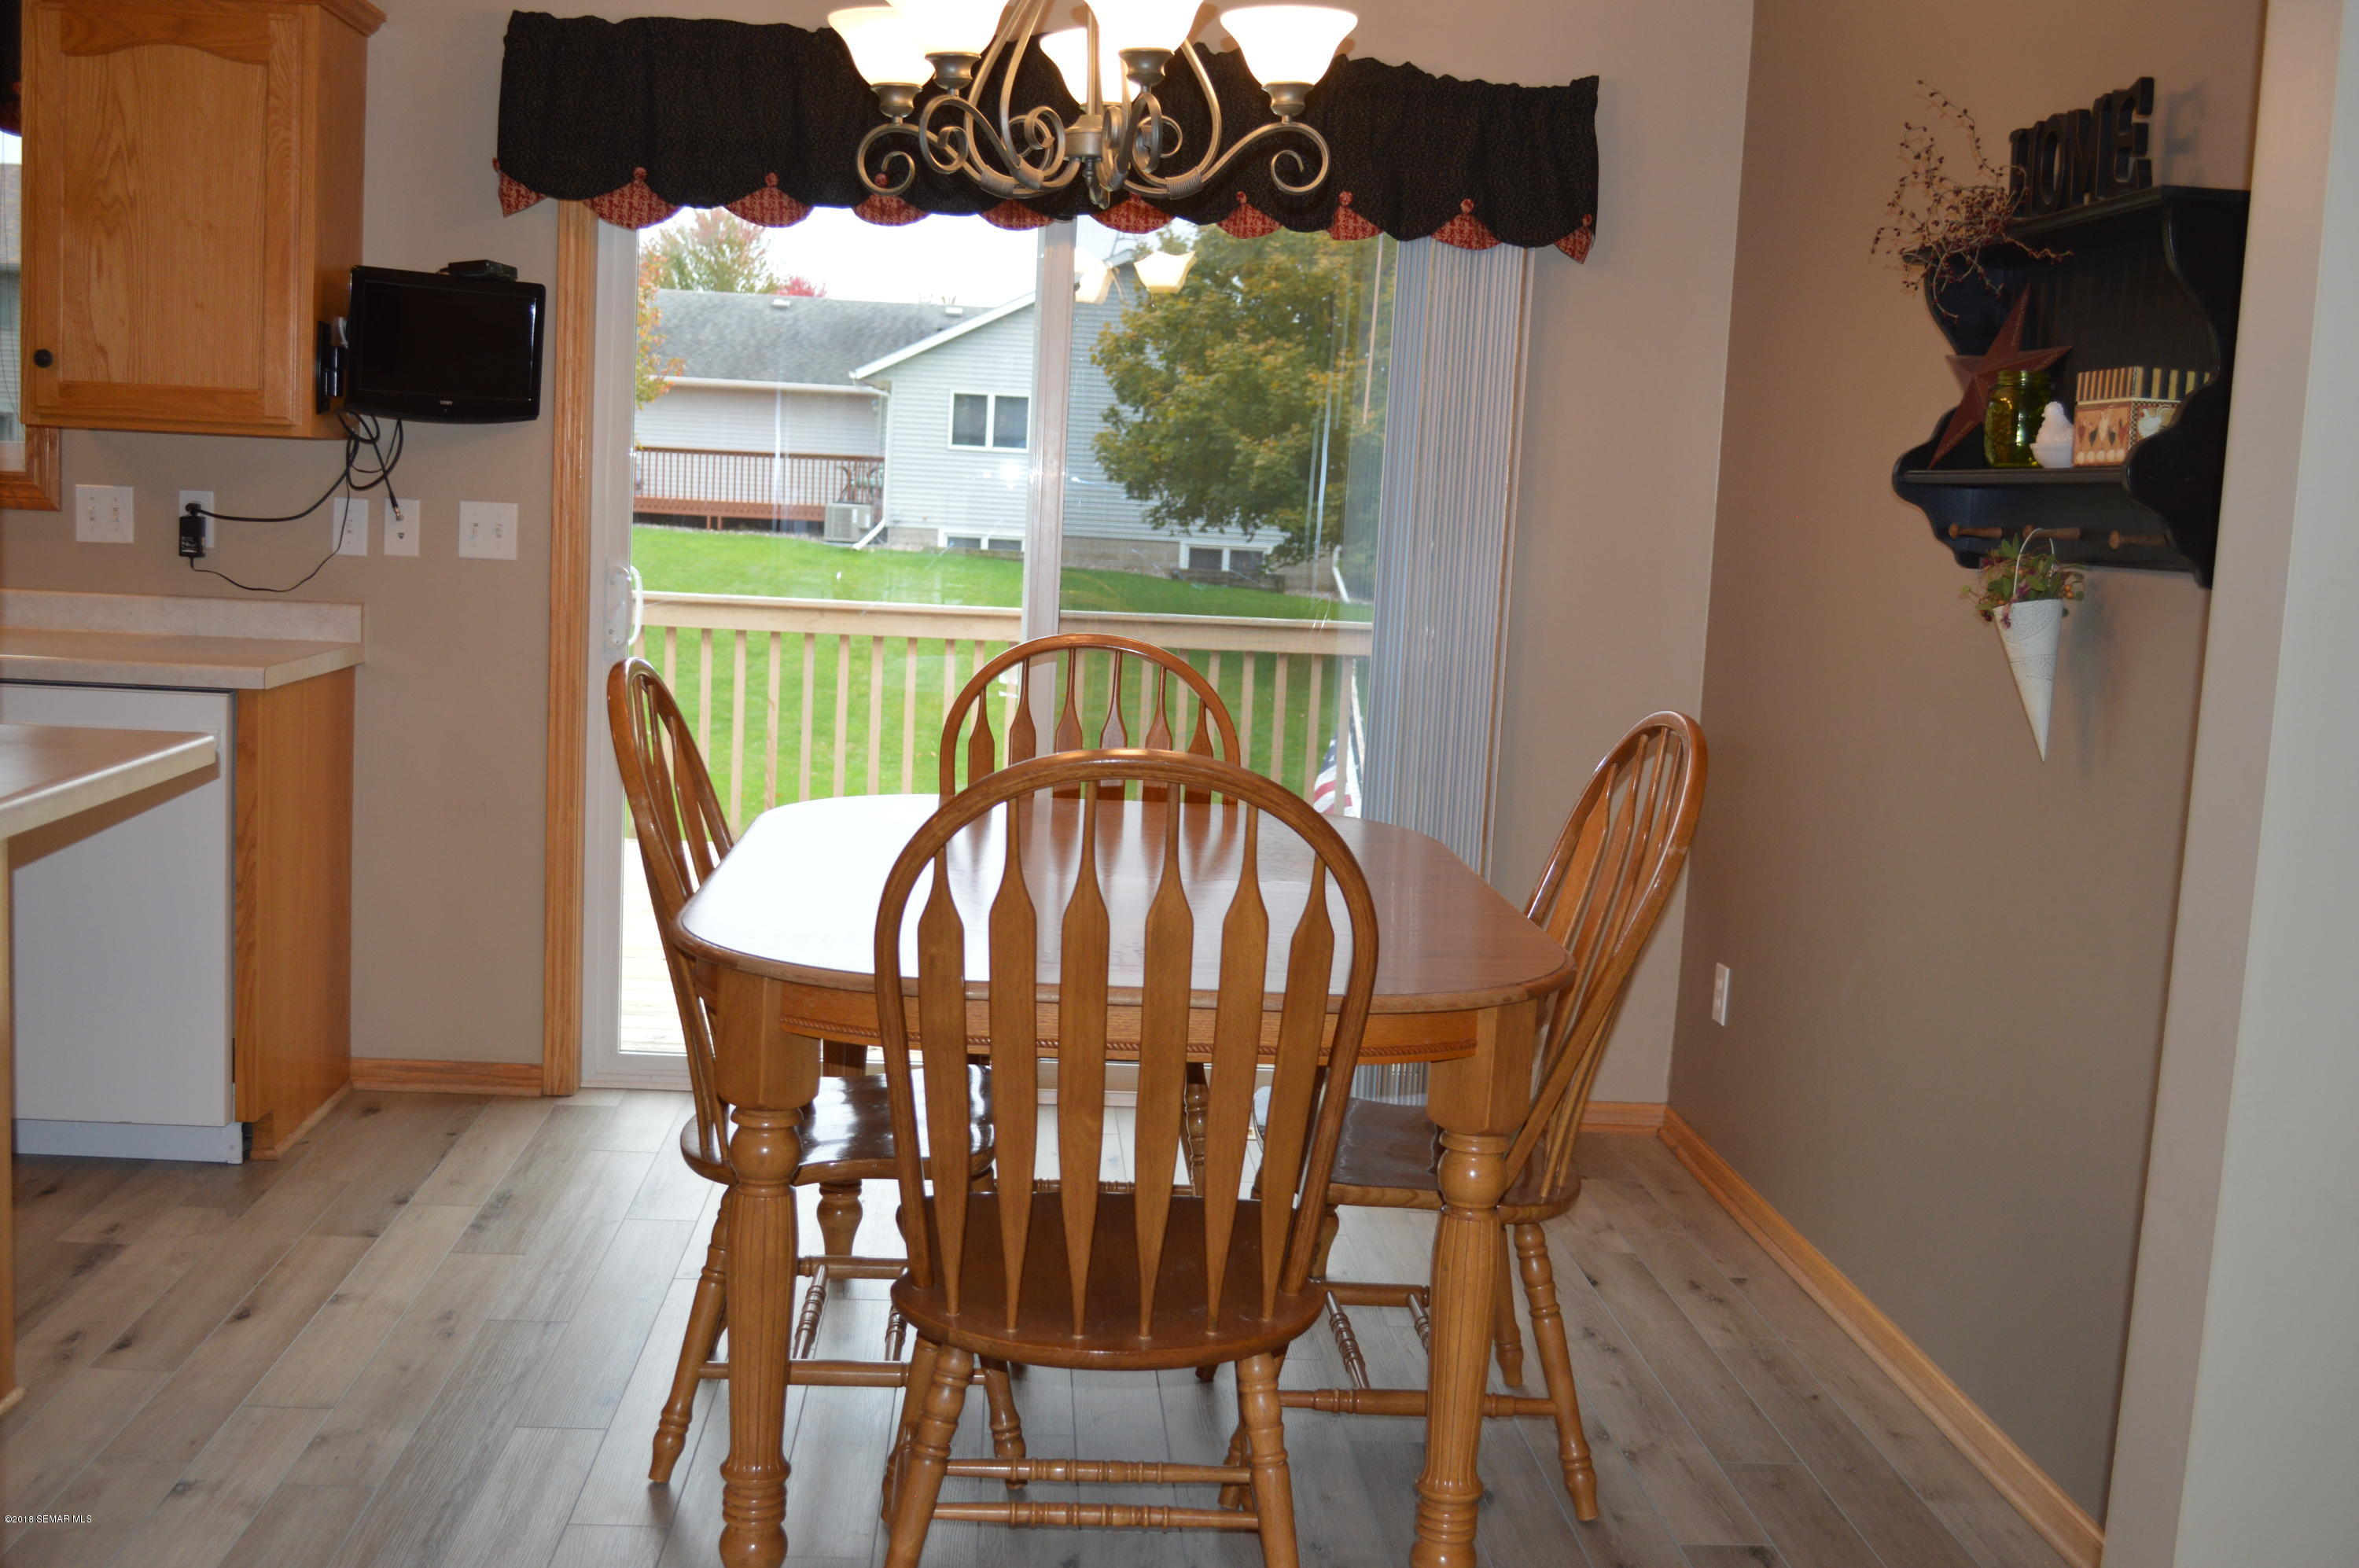 412 South,Dover,Minnesota 55929,3 Bedrooms Bedrooms,2 BathroomsBathrooms,Single family residence,South,4091938